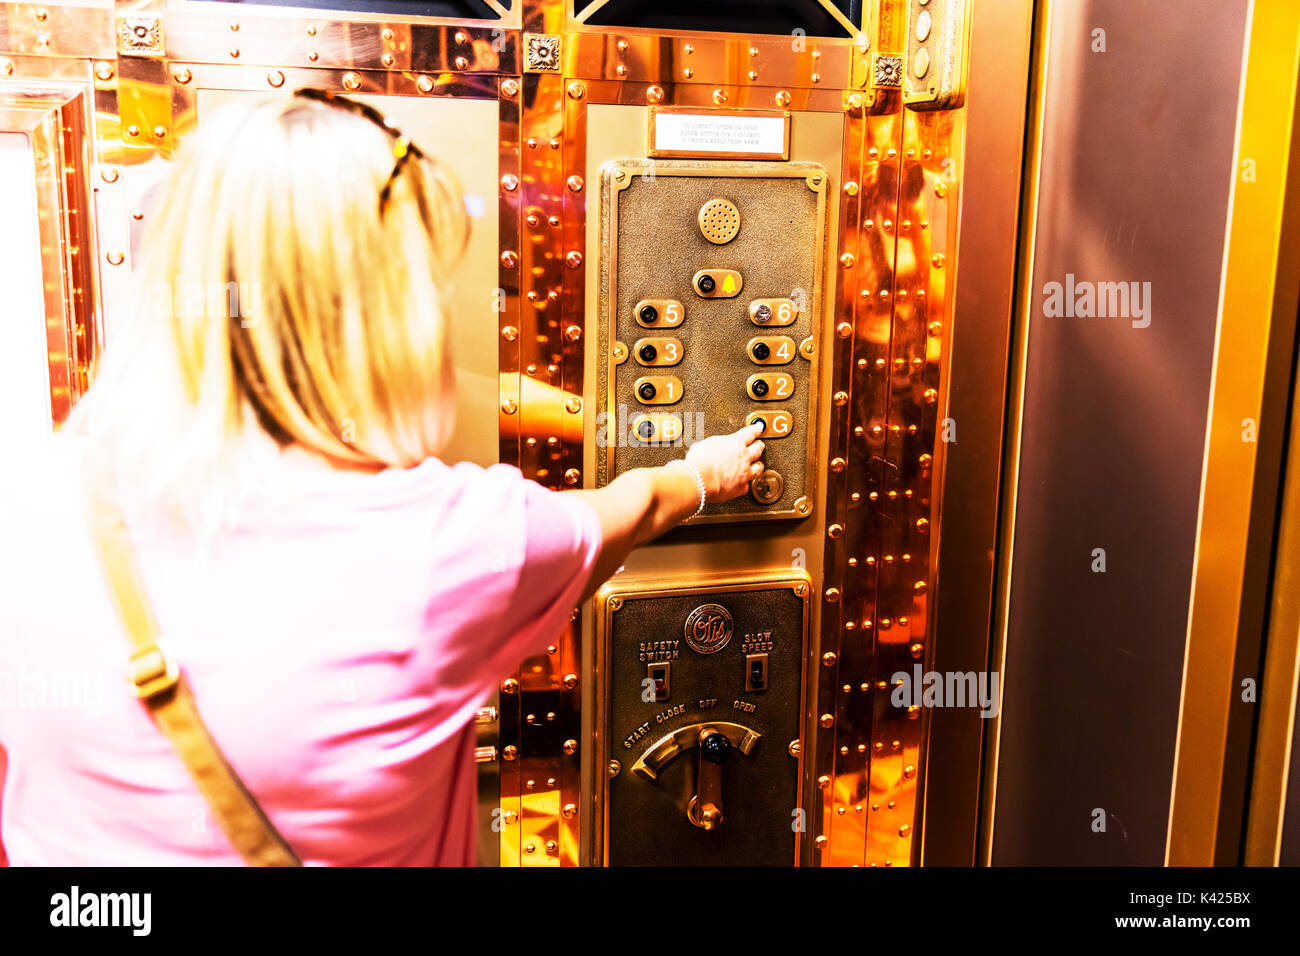 Pressing button in elevator, using elevator, selecting floor number in elevator, using lift, pressing button in - Stock Image